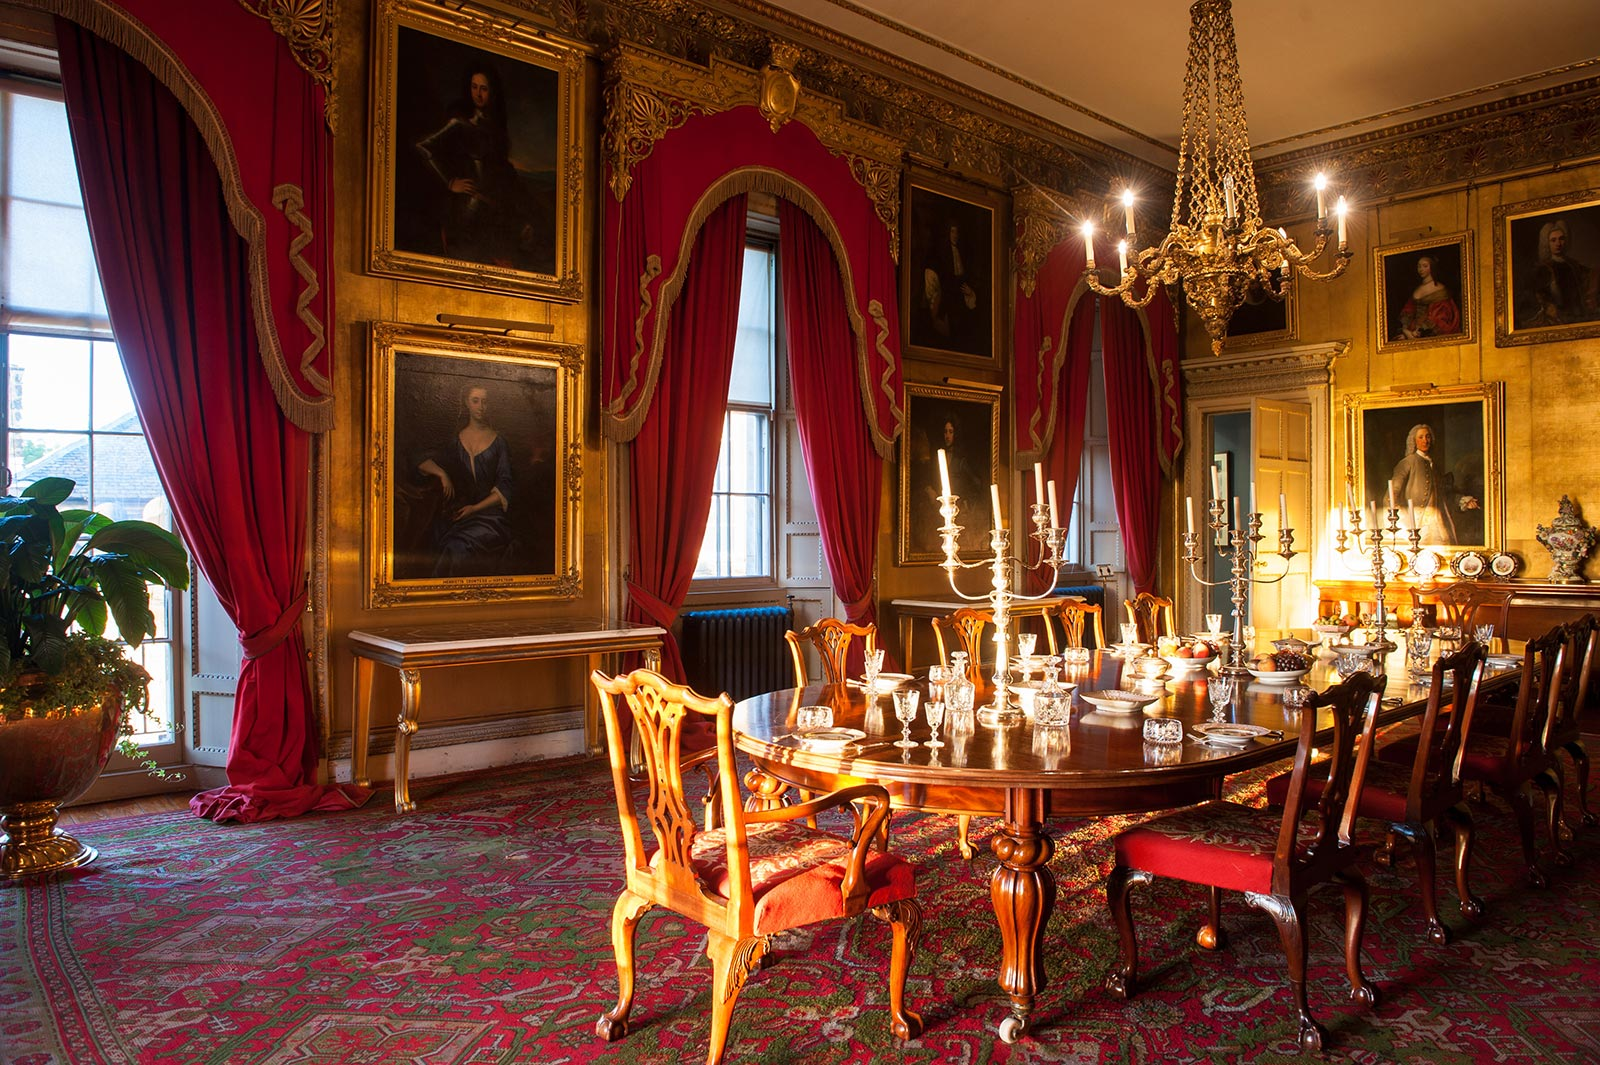 State dining room dinner